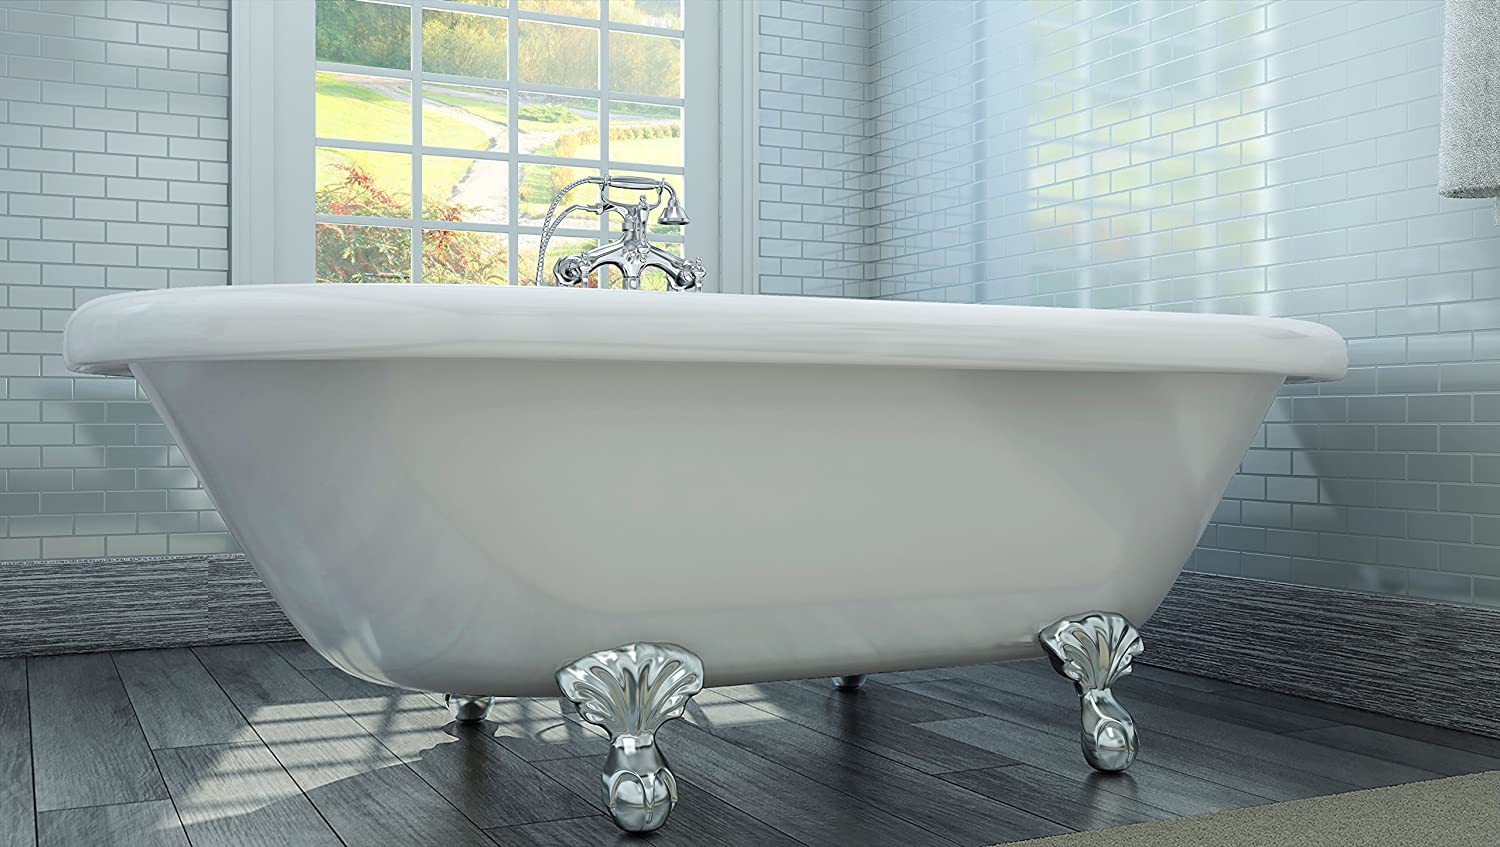 Luxury 72 inch Large Clawfoot Tub with Vintage Tub Design in White ...